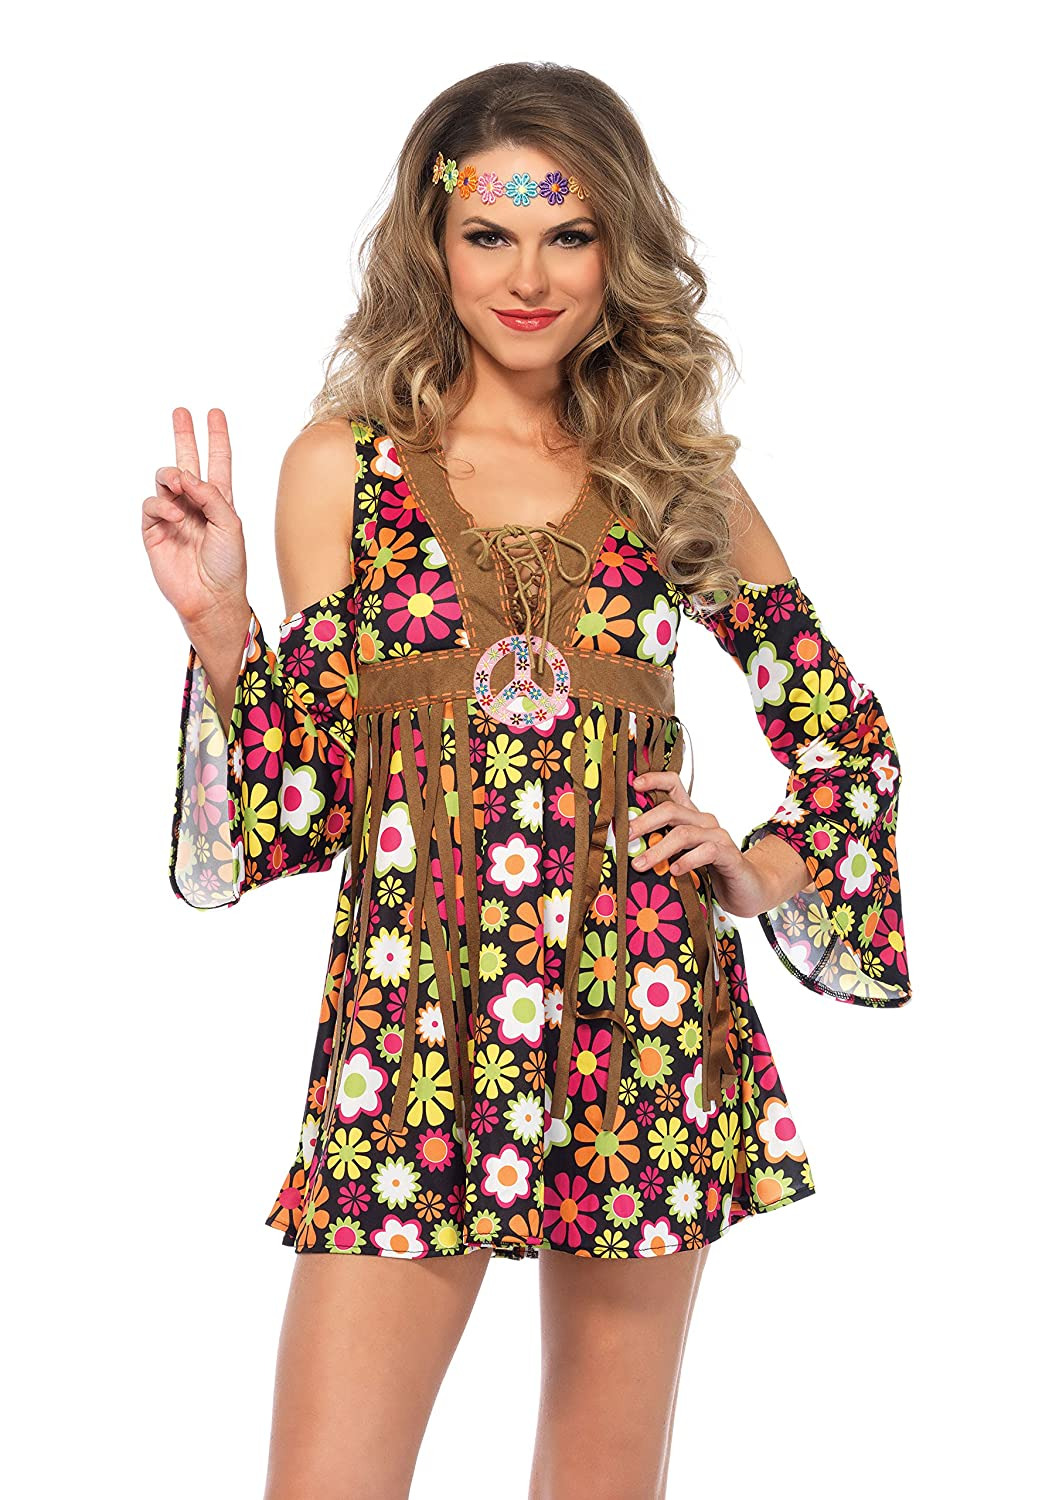 60s Costumes: Hippie, Go Go Dancer, Flower Child, Mod Style Leg Avenue Womens Starflower Hippie Costume $24.89 AT vintagedancer.com